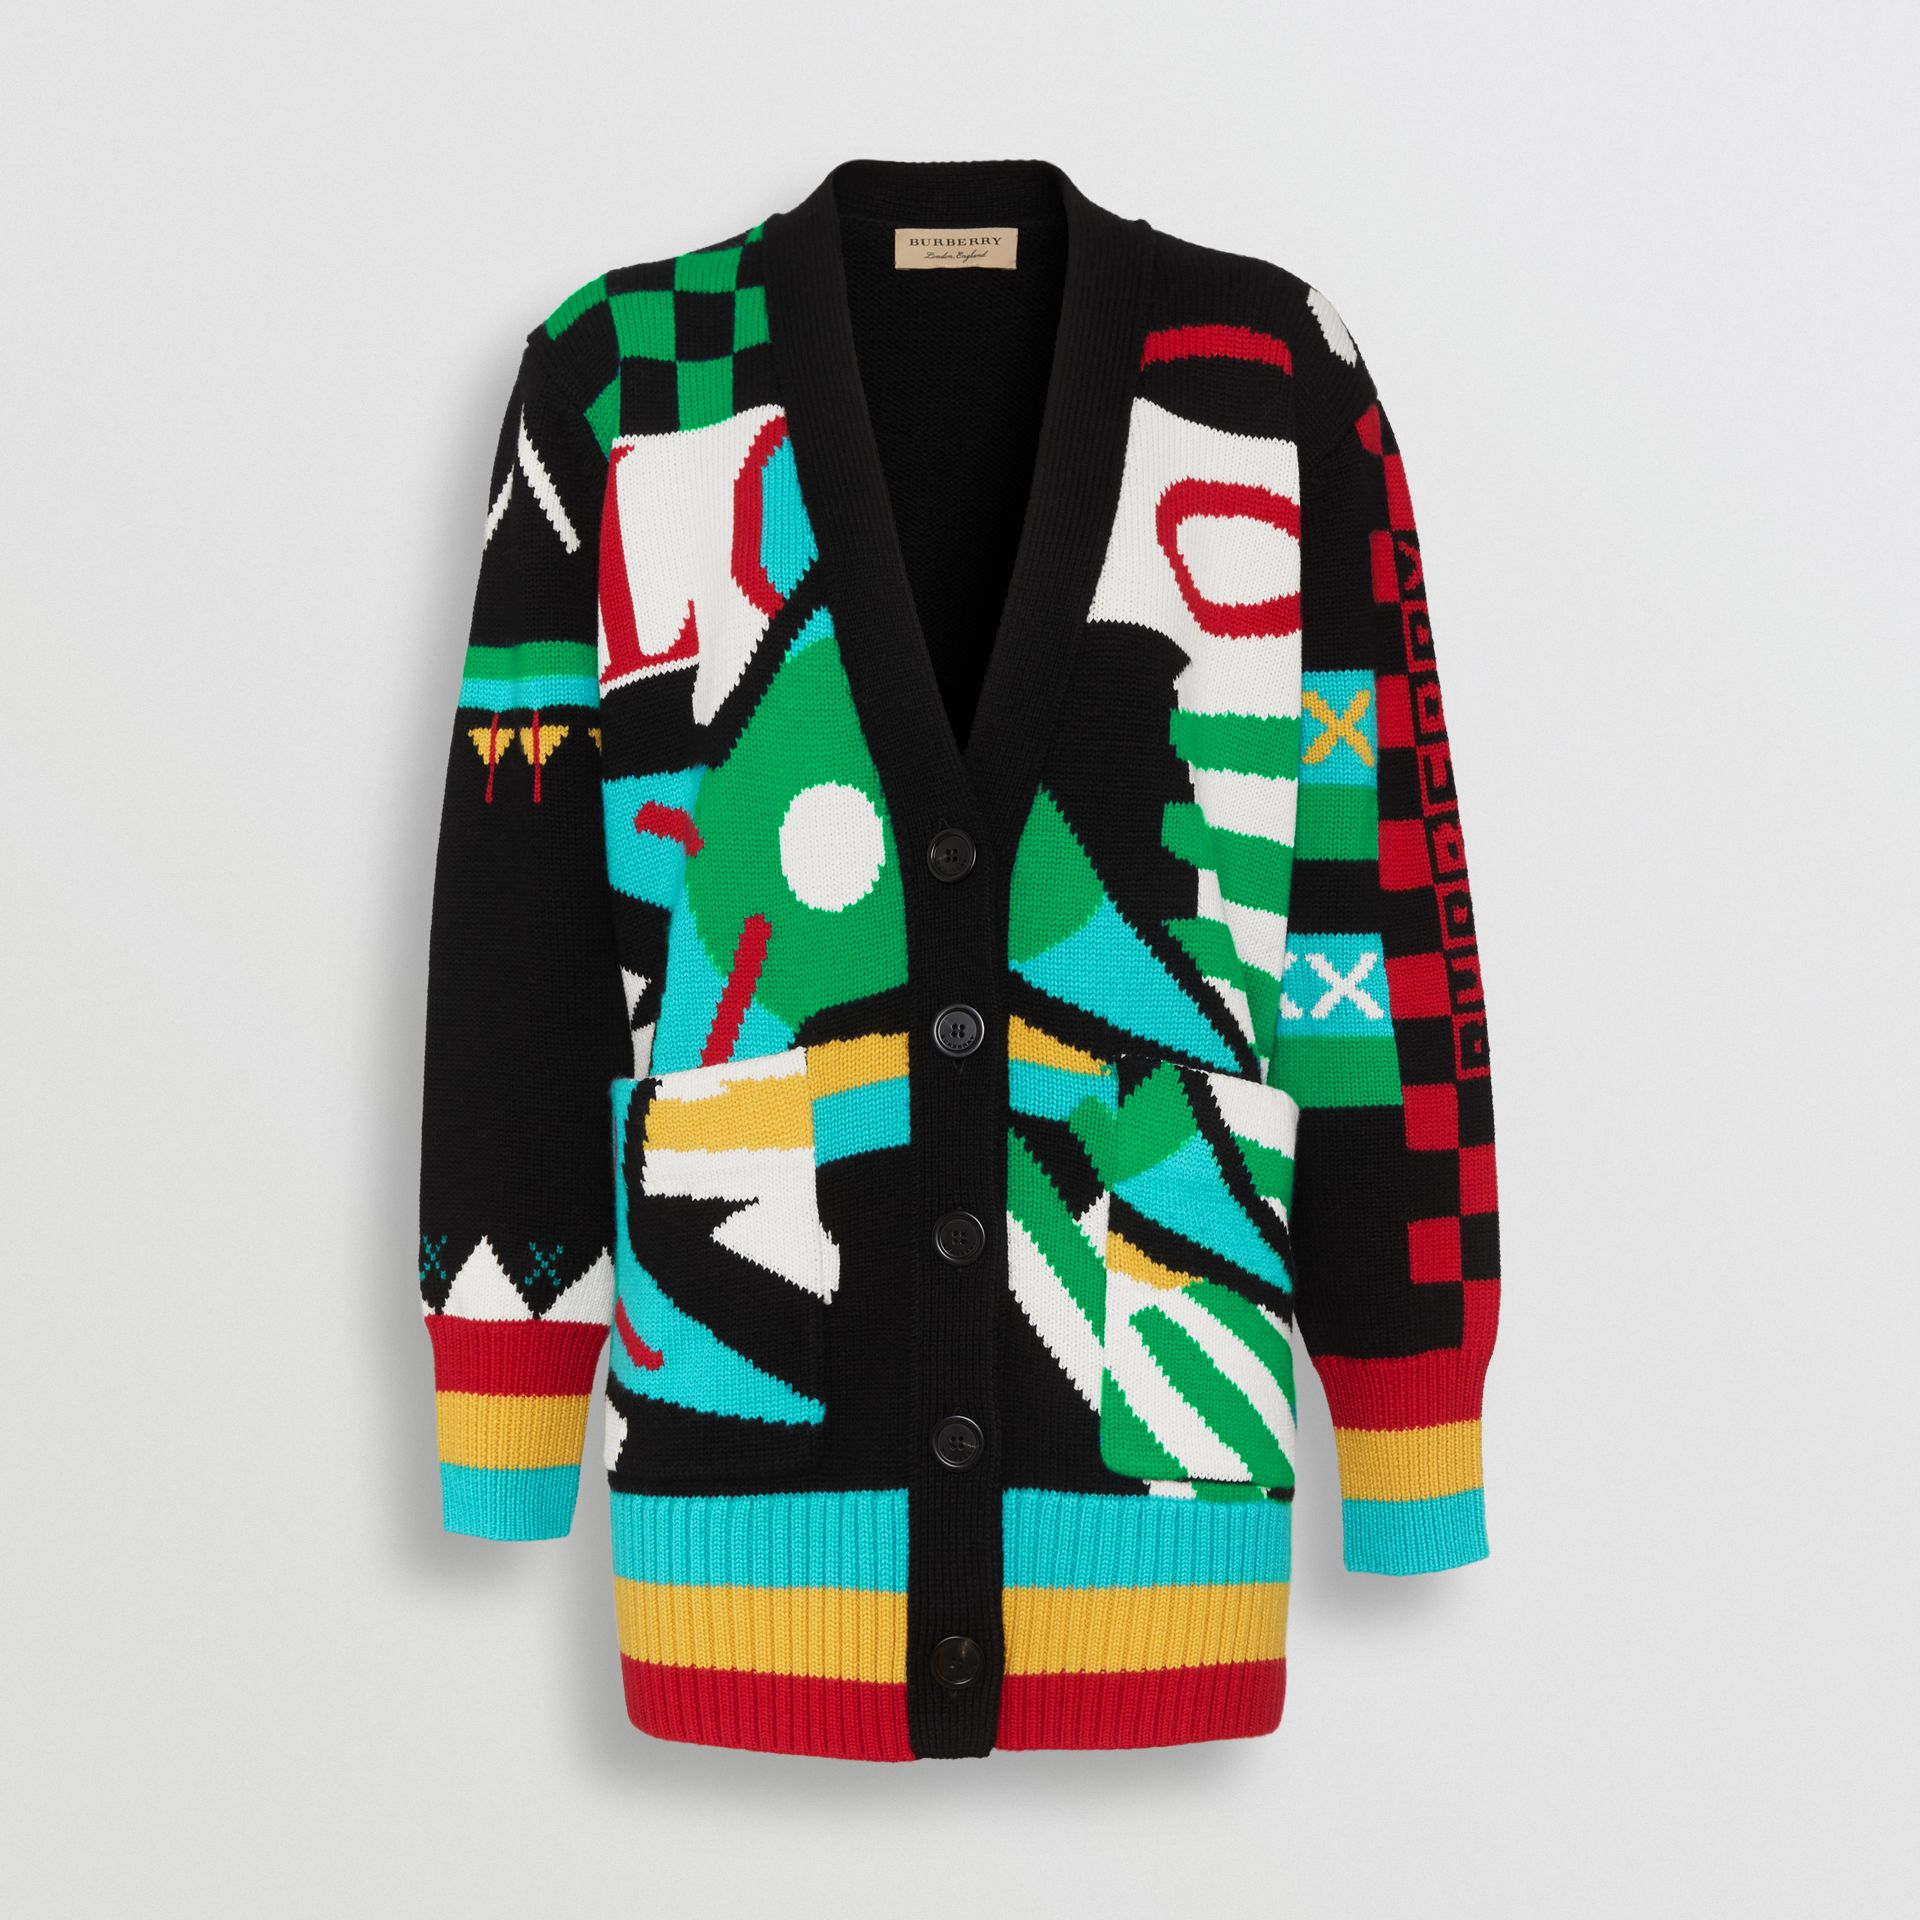 Graphic Intarsia Merino Wool Cotton Cardigan in Multicolour - Women | Burberry - gallery image 3